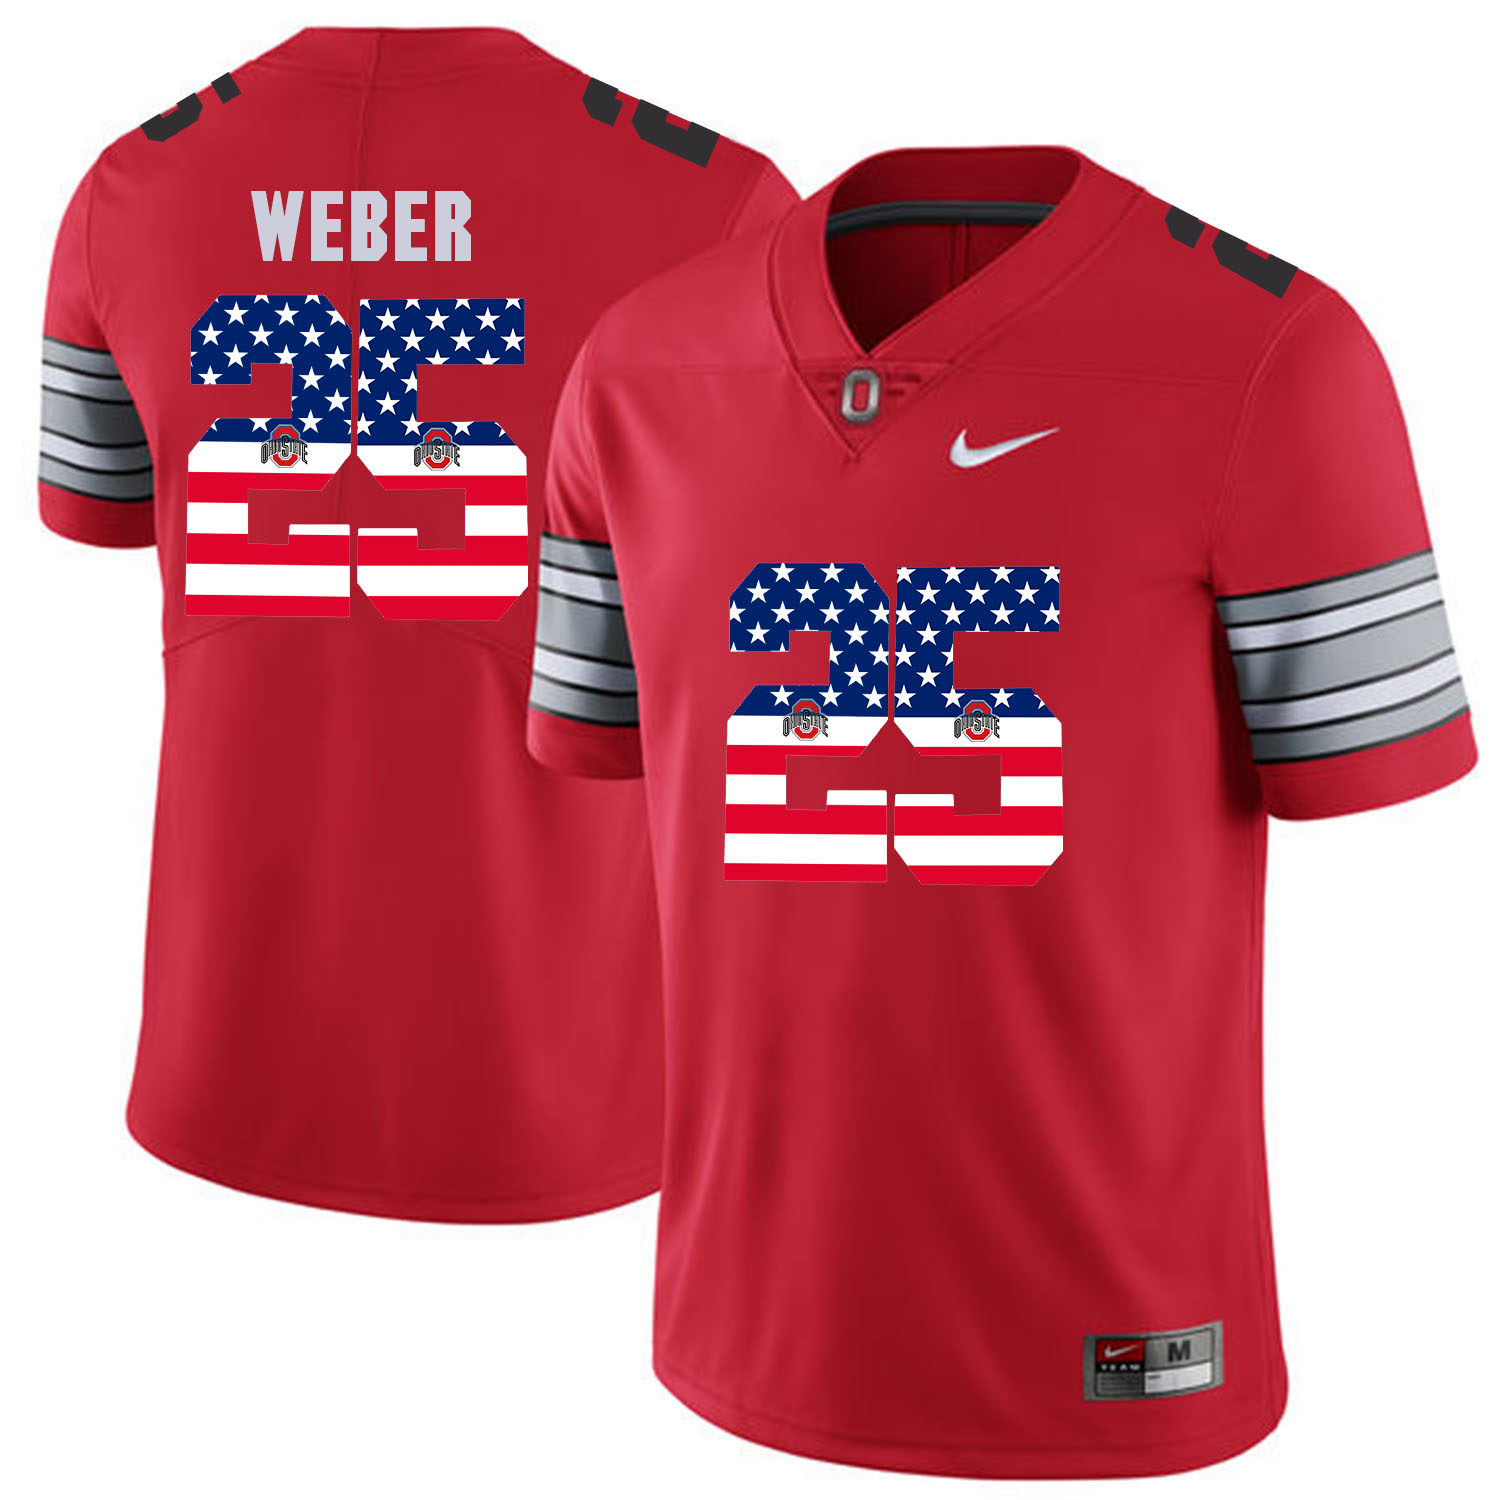 Men Ohio State 25 Weber Red Flag Customized NCAA Jerseys